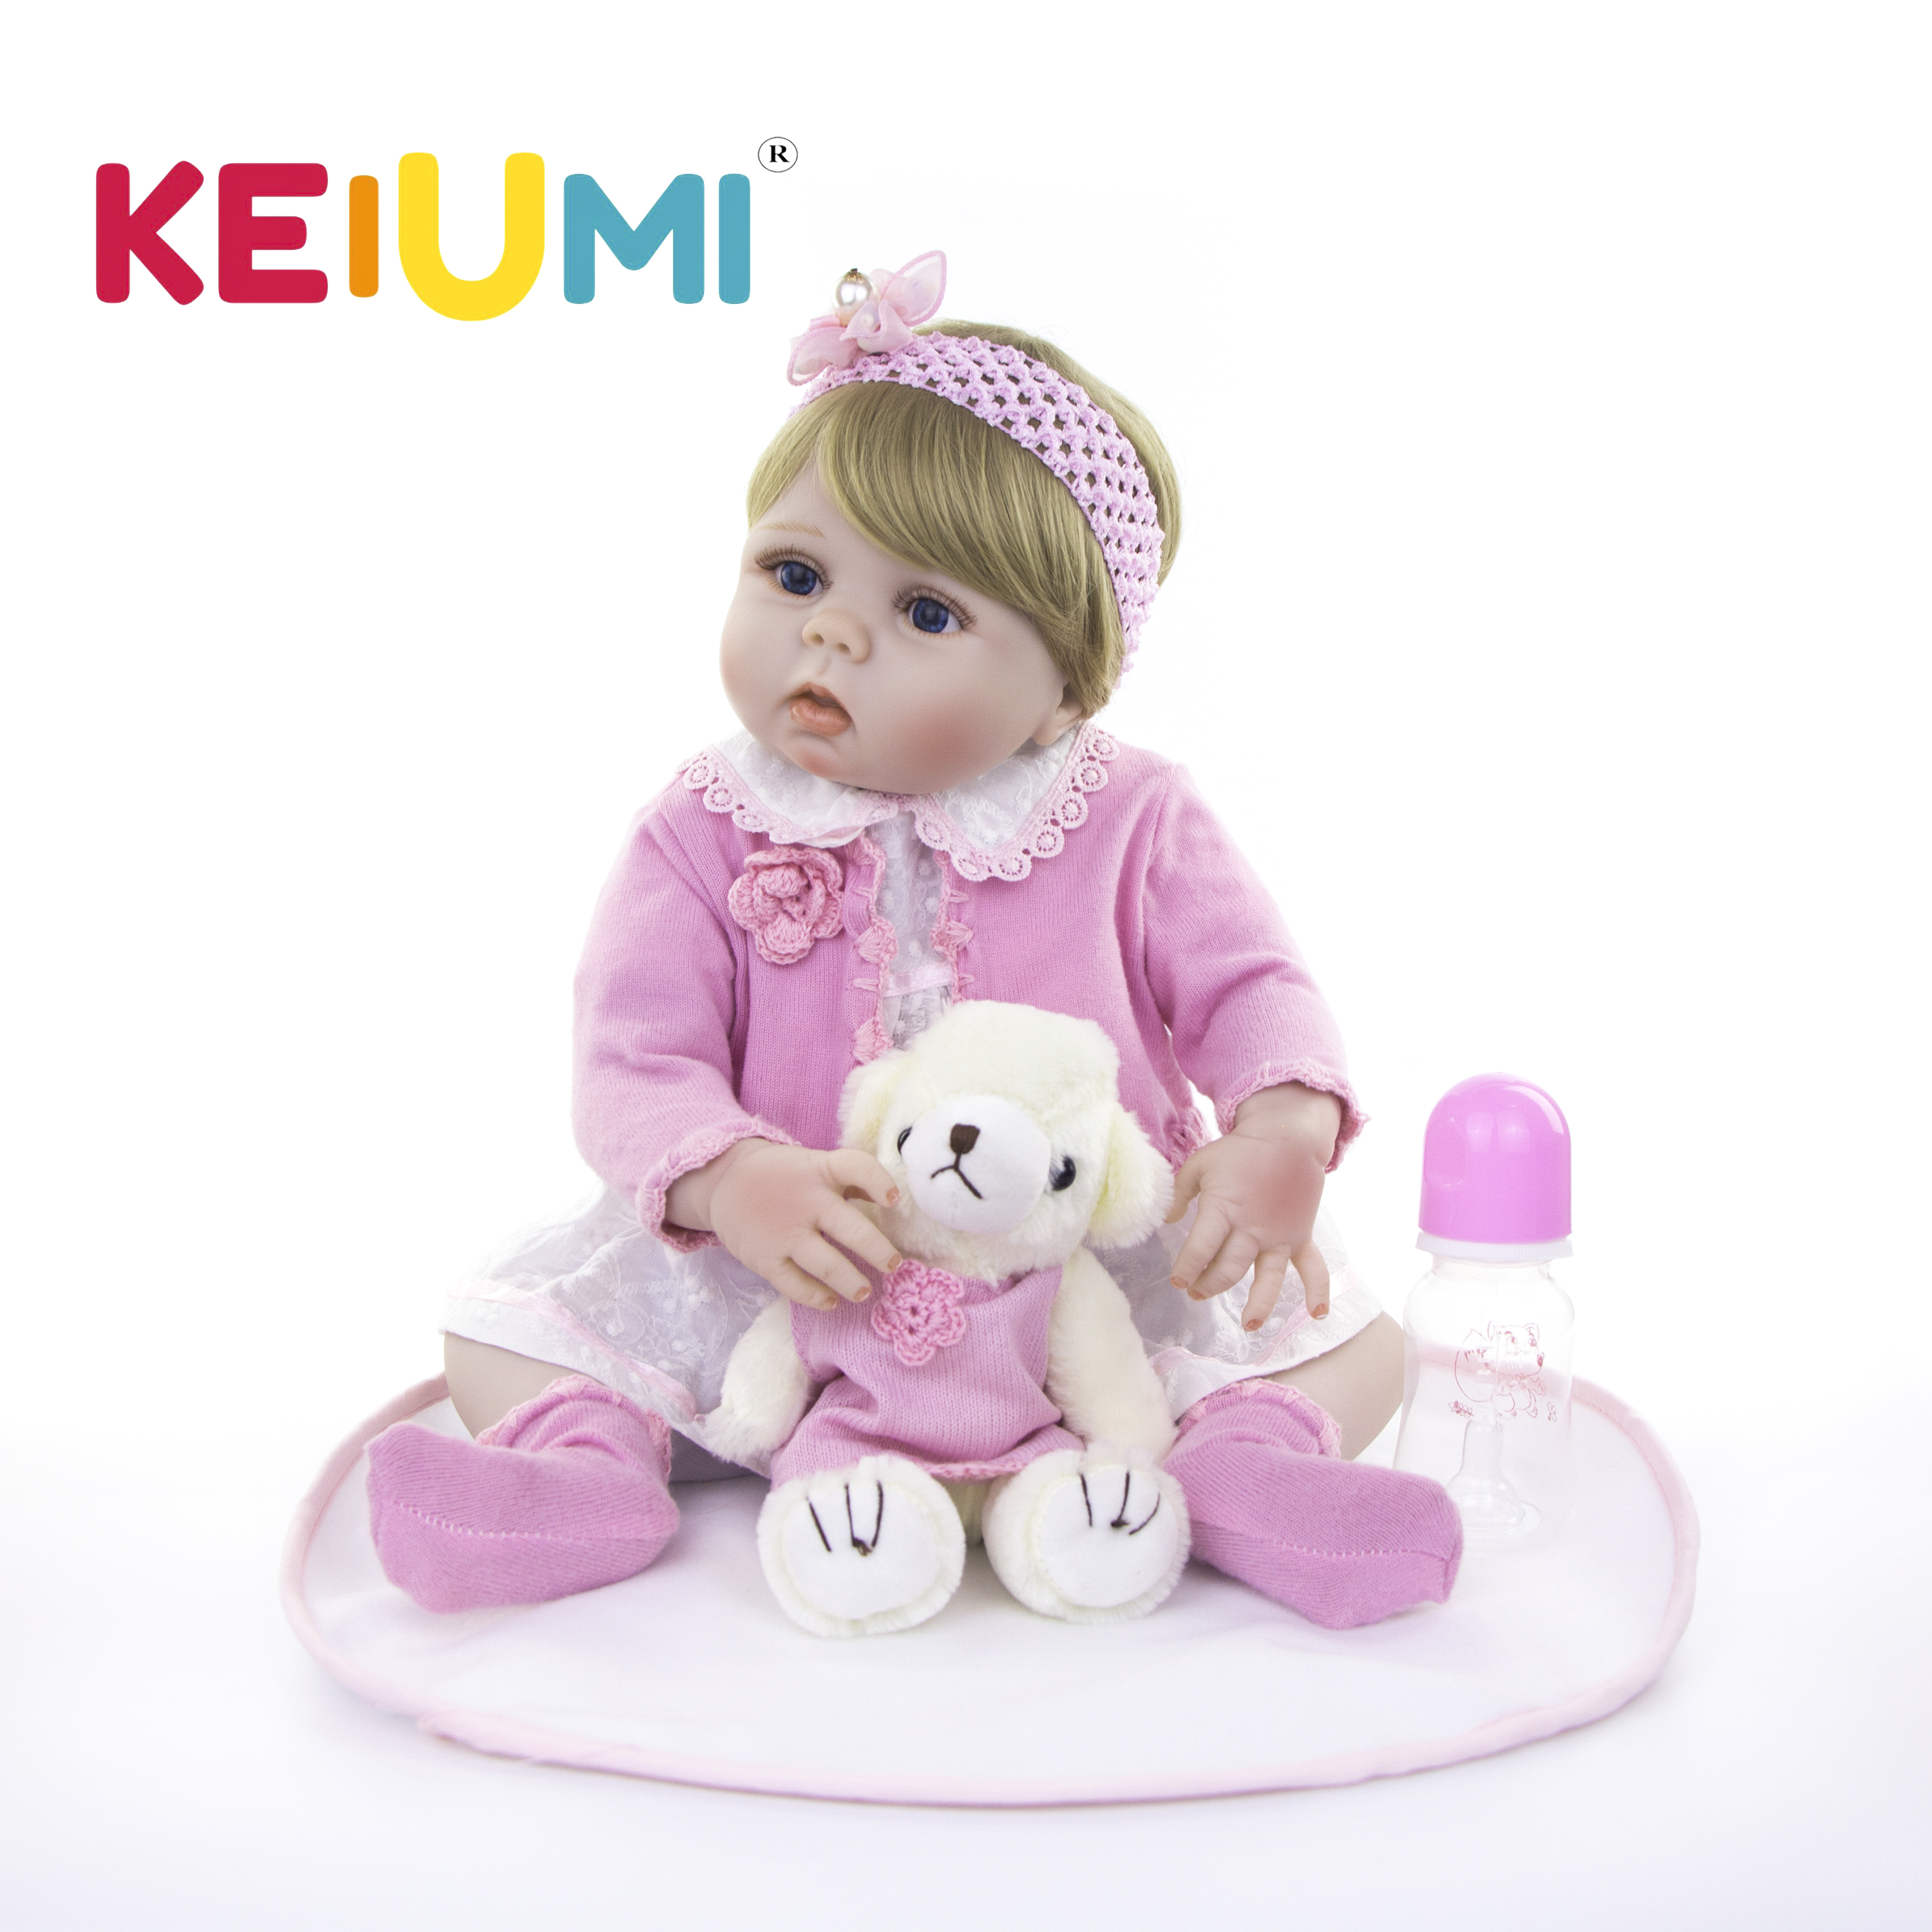 KEIUMI 23 Inch Lifelike Full Body Silicone Reborn Dolls Pure Handmade Girl Baby Toy Doll For Kid Christmas Gift Golden Wig HairKEIUMI 23 Inch Lifelike Full Body Silicone Reborn Dolls Pure Handmade Girl Baby Toy Doll For Kid Christmas Gift Golden Wig Hair